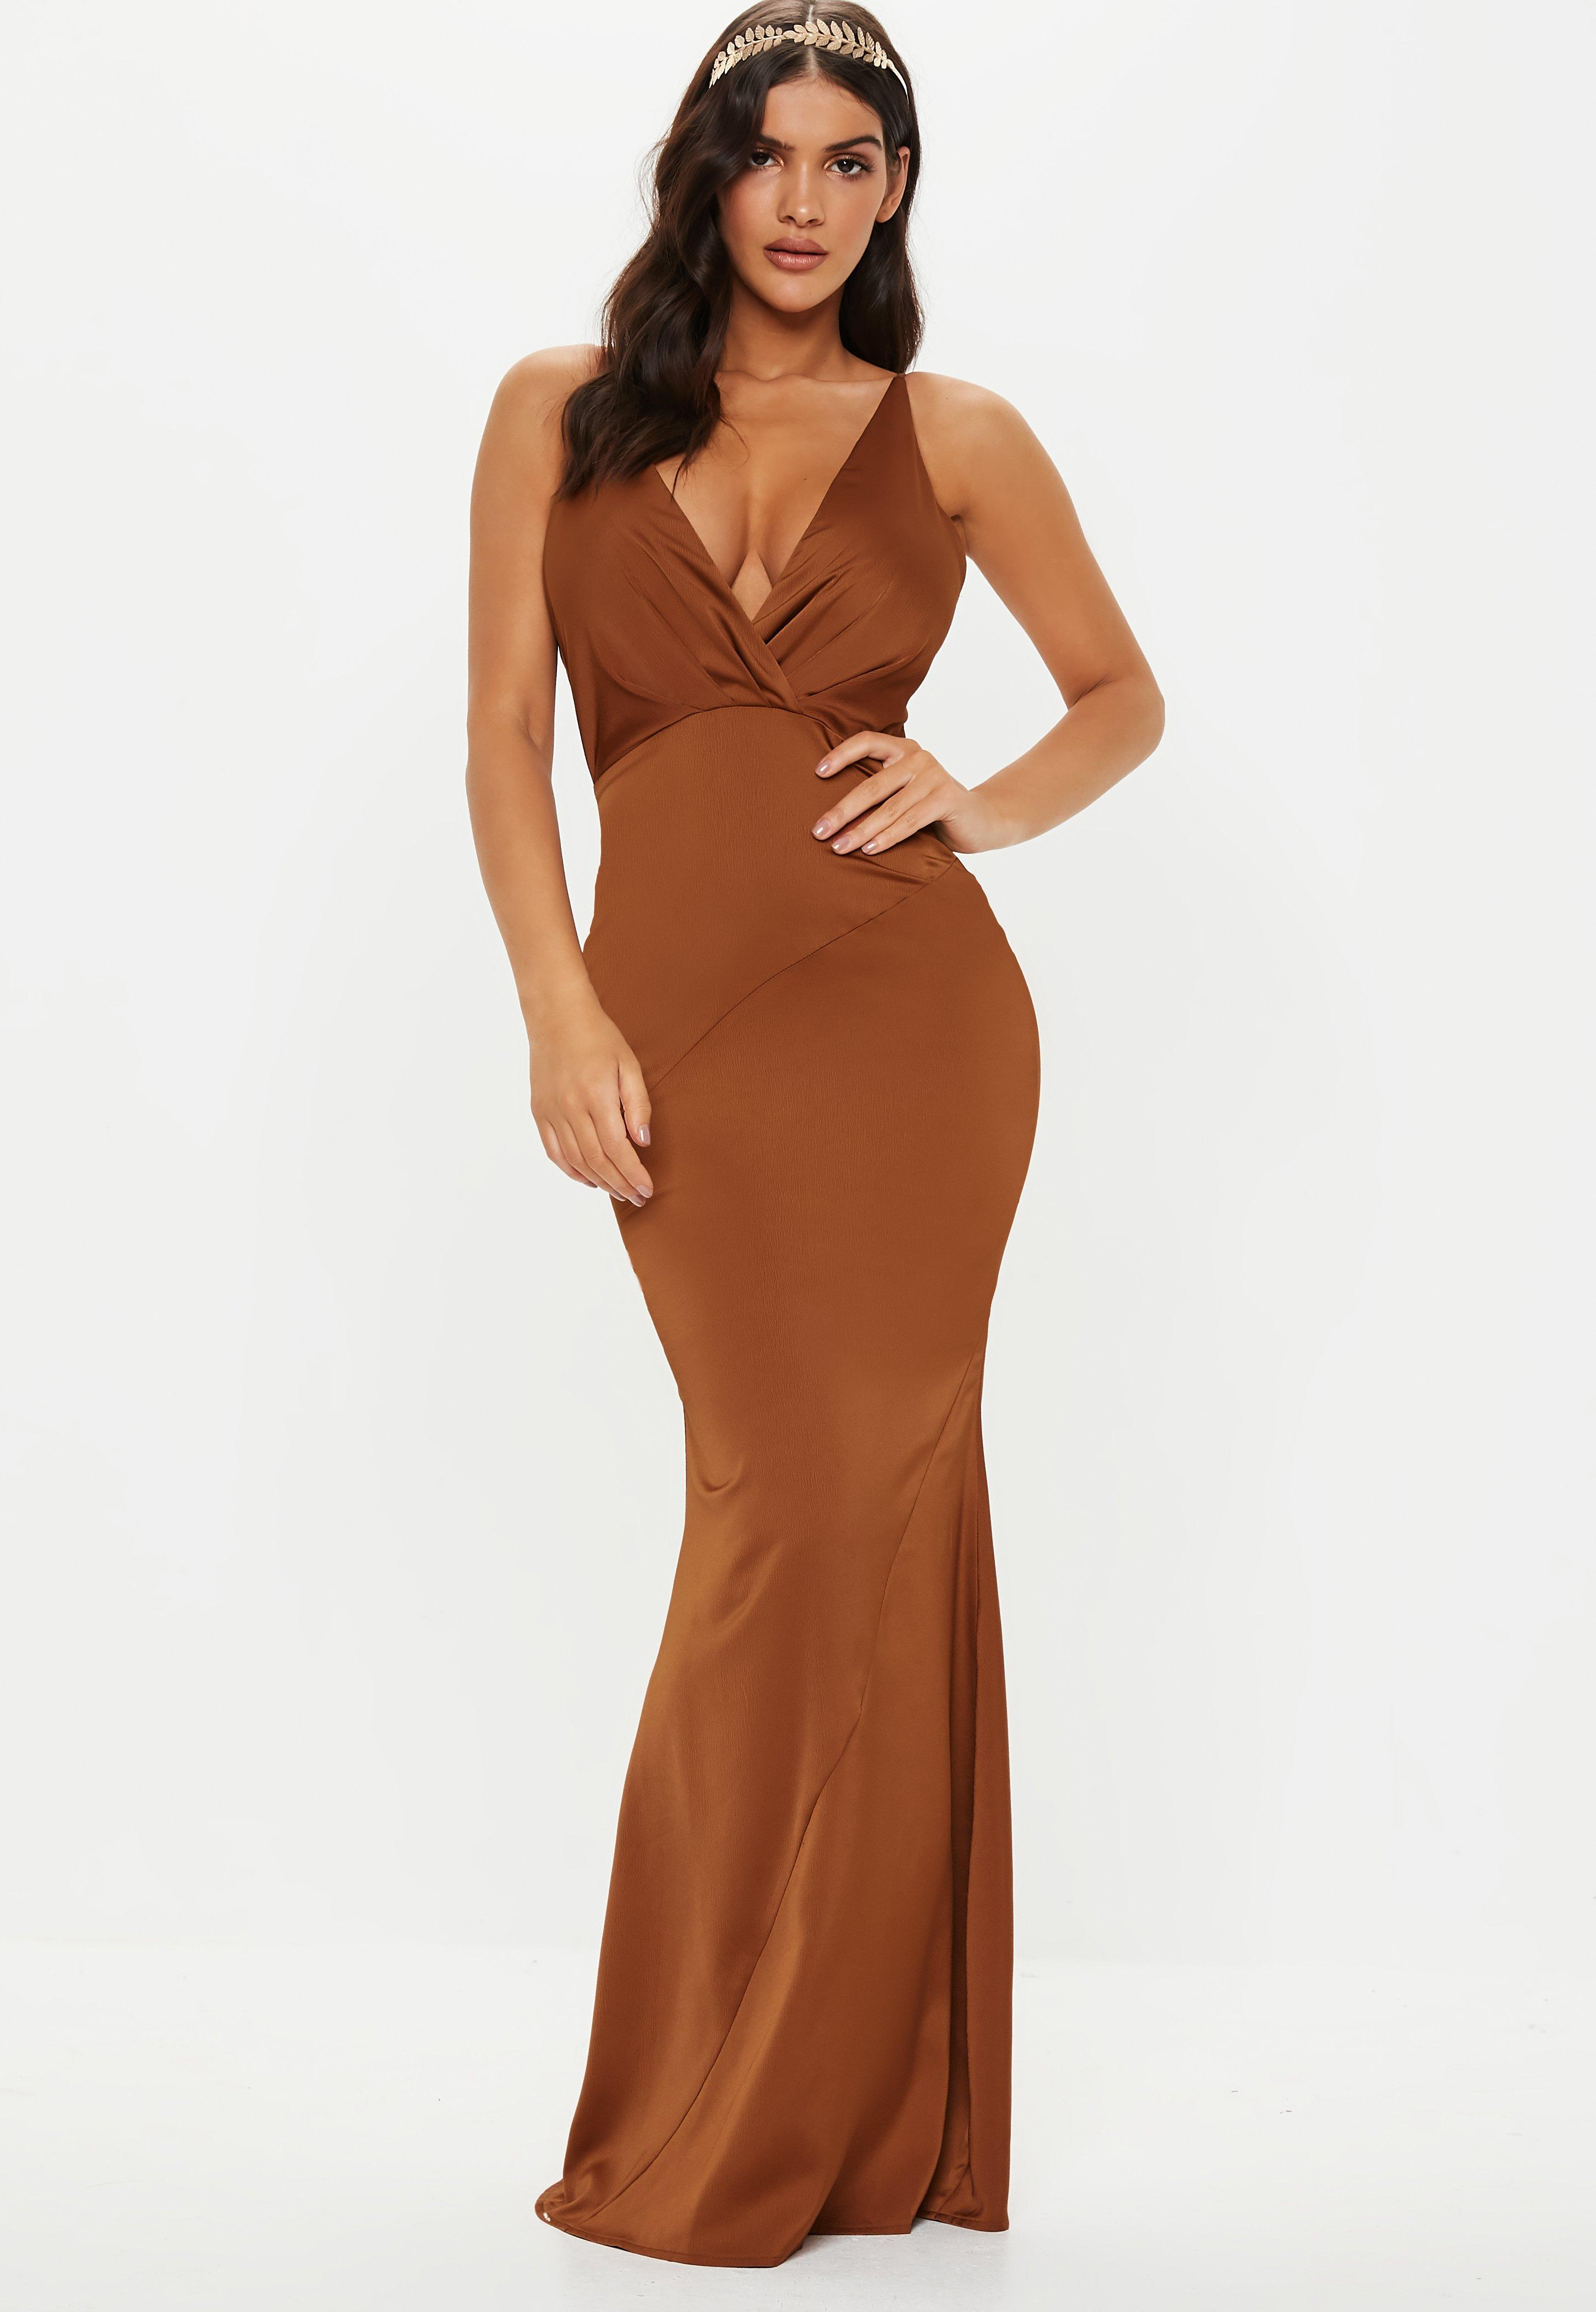 Lyst - Missguided Bridesmaid Bronze Satin V Plunge Maxi Dress in Brown 7e9dfd960